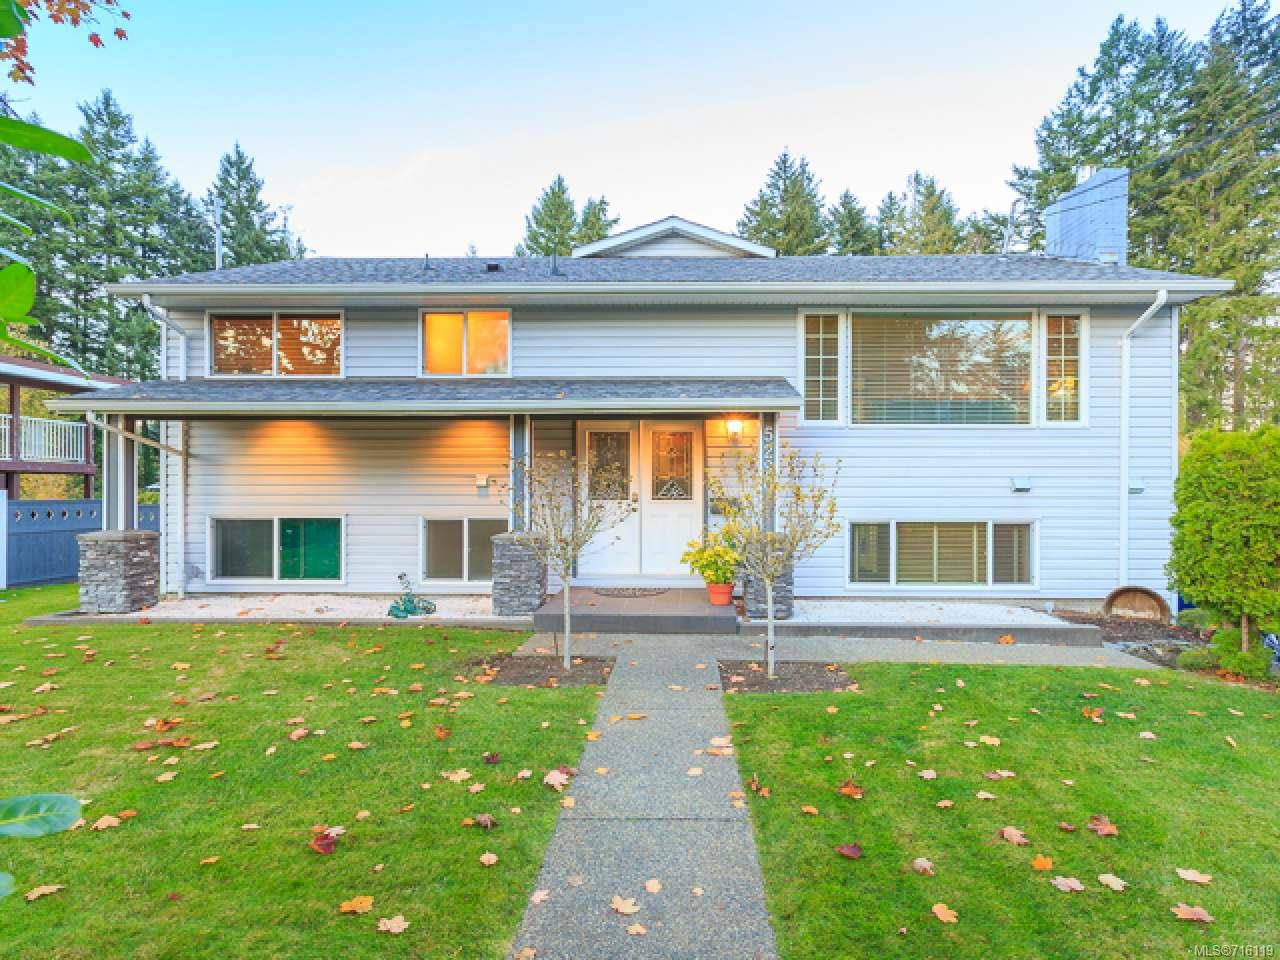 FEATURED LISTING: 5290 Metral Dr NANAIMO